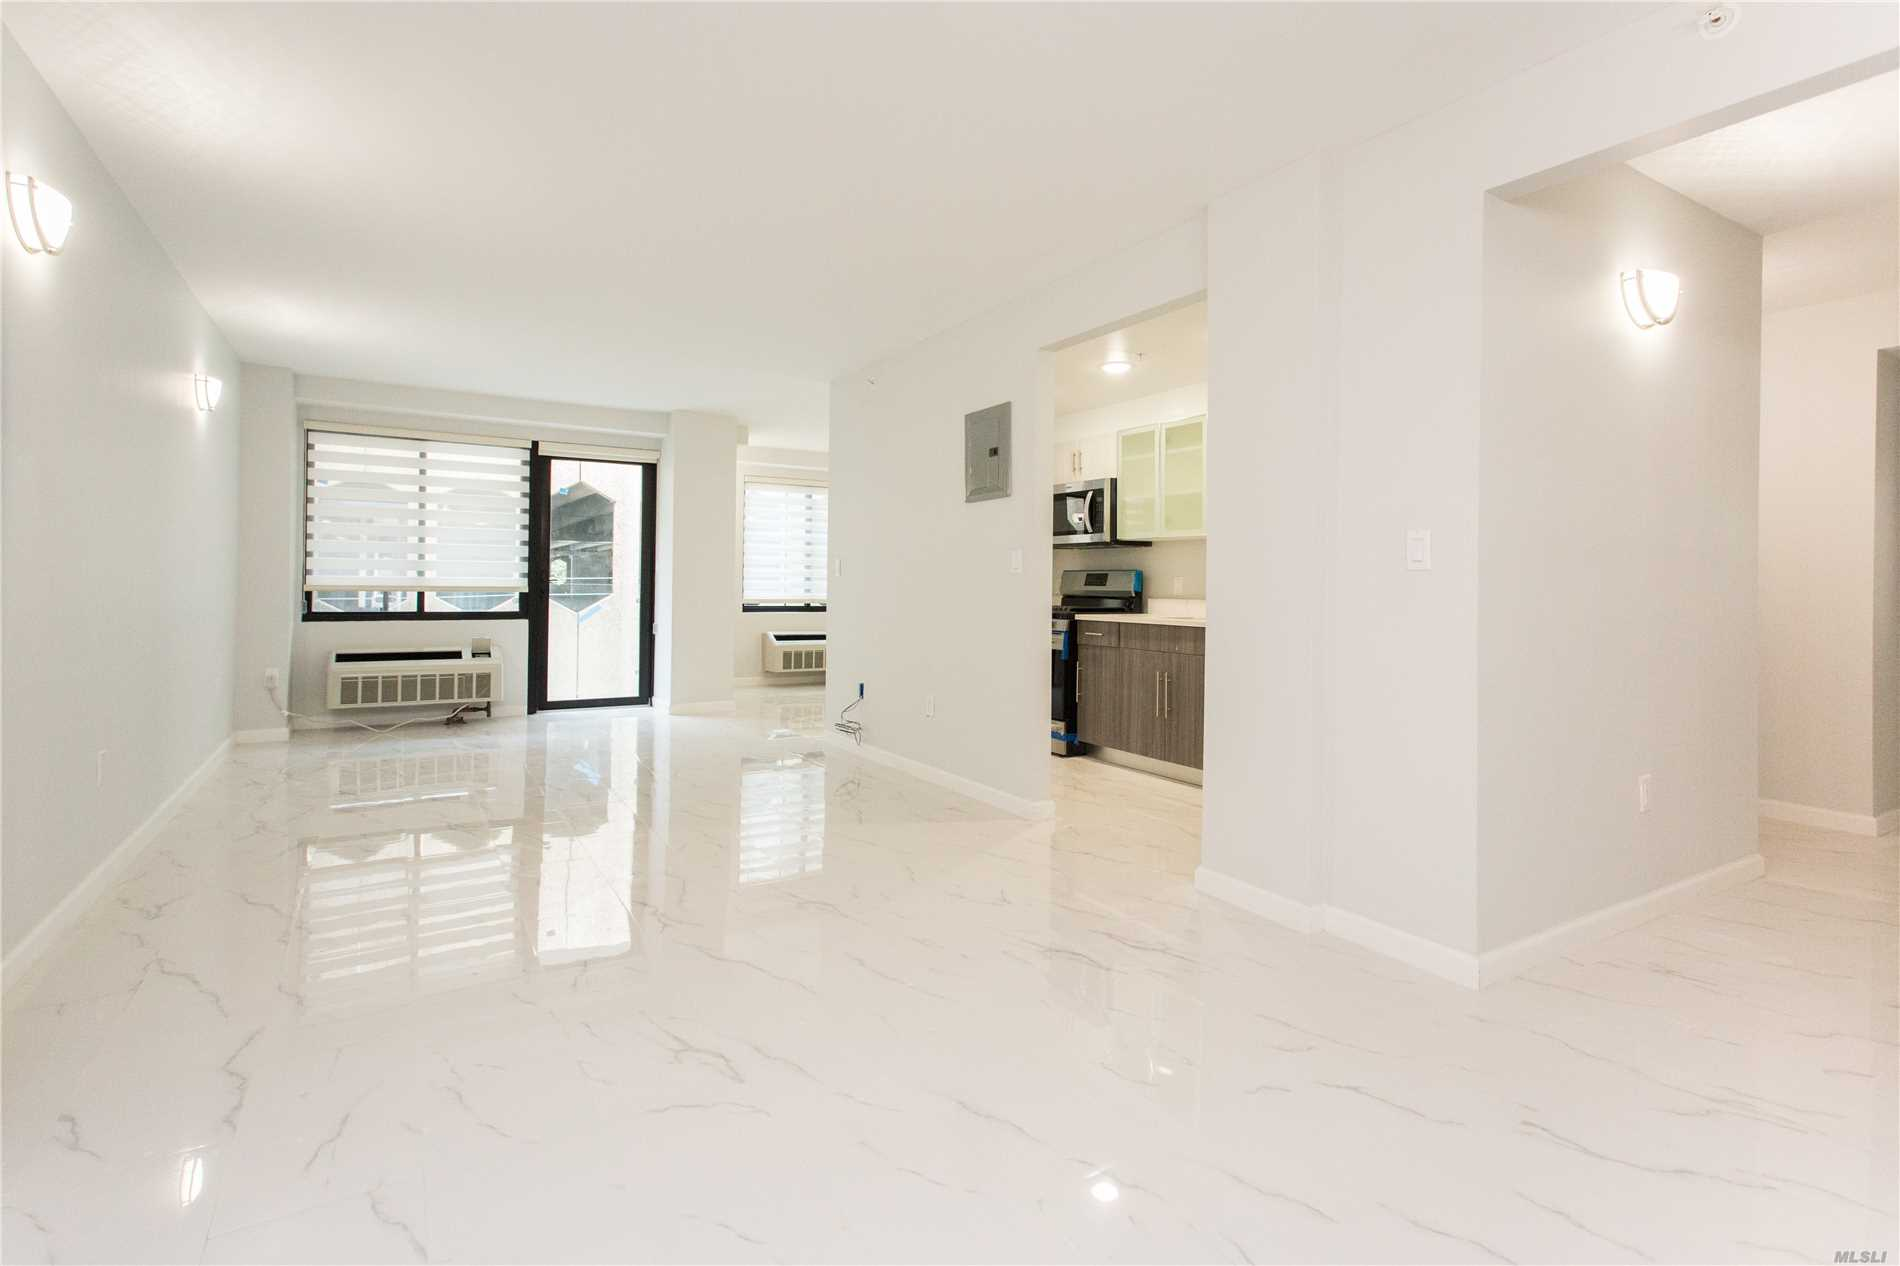 Great Neck. Great Neck's Newest Luxury Doorman Rental Building, In Top Central Location Built W/The Finest Of Finishes. Be The 1st To Live In This Magnificent Building W/Roof Deck, Washer/Dryer In Unit, Garage Parking, Gym And More!